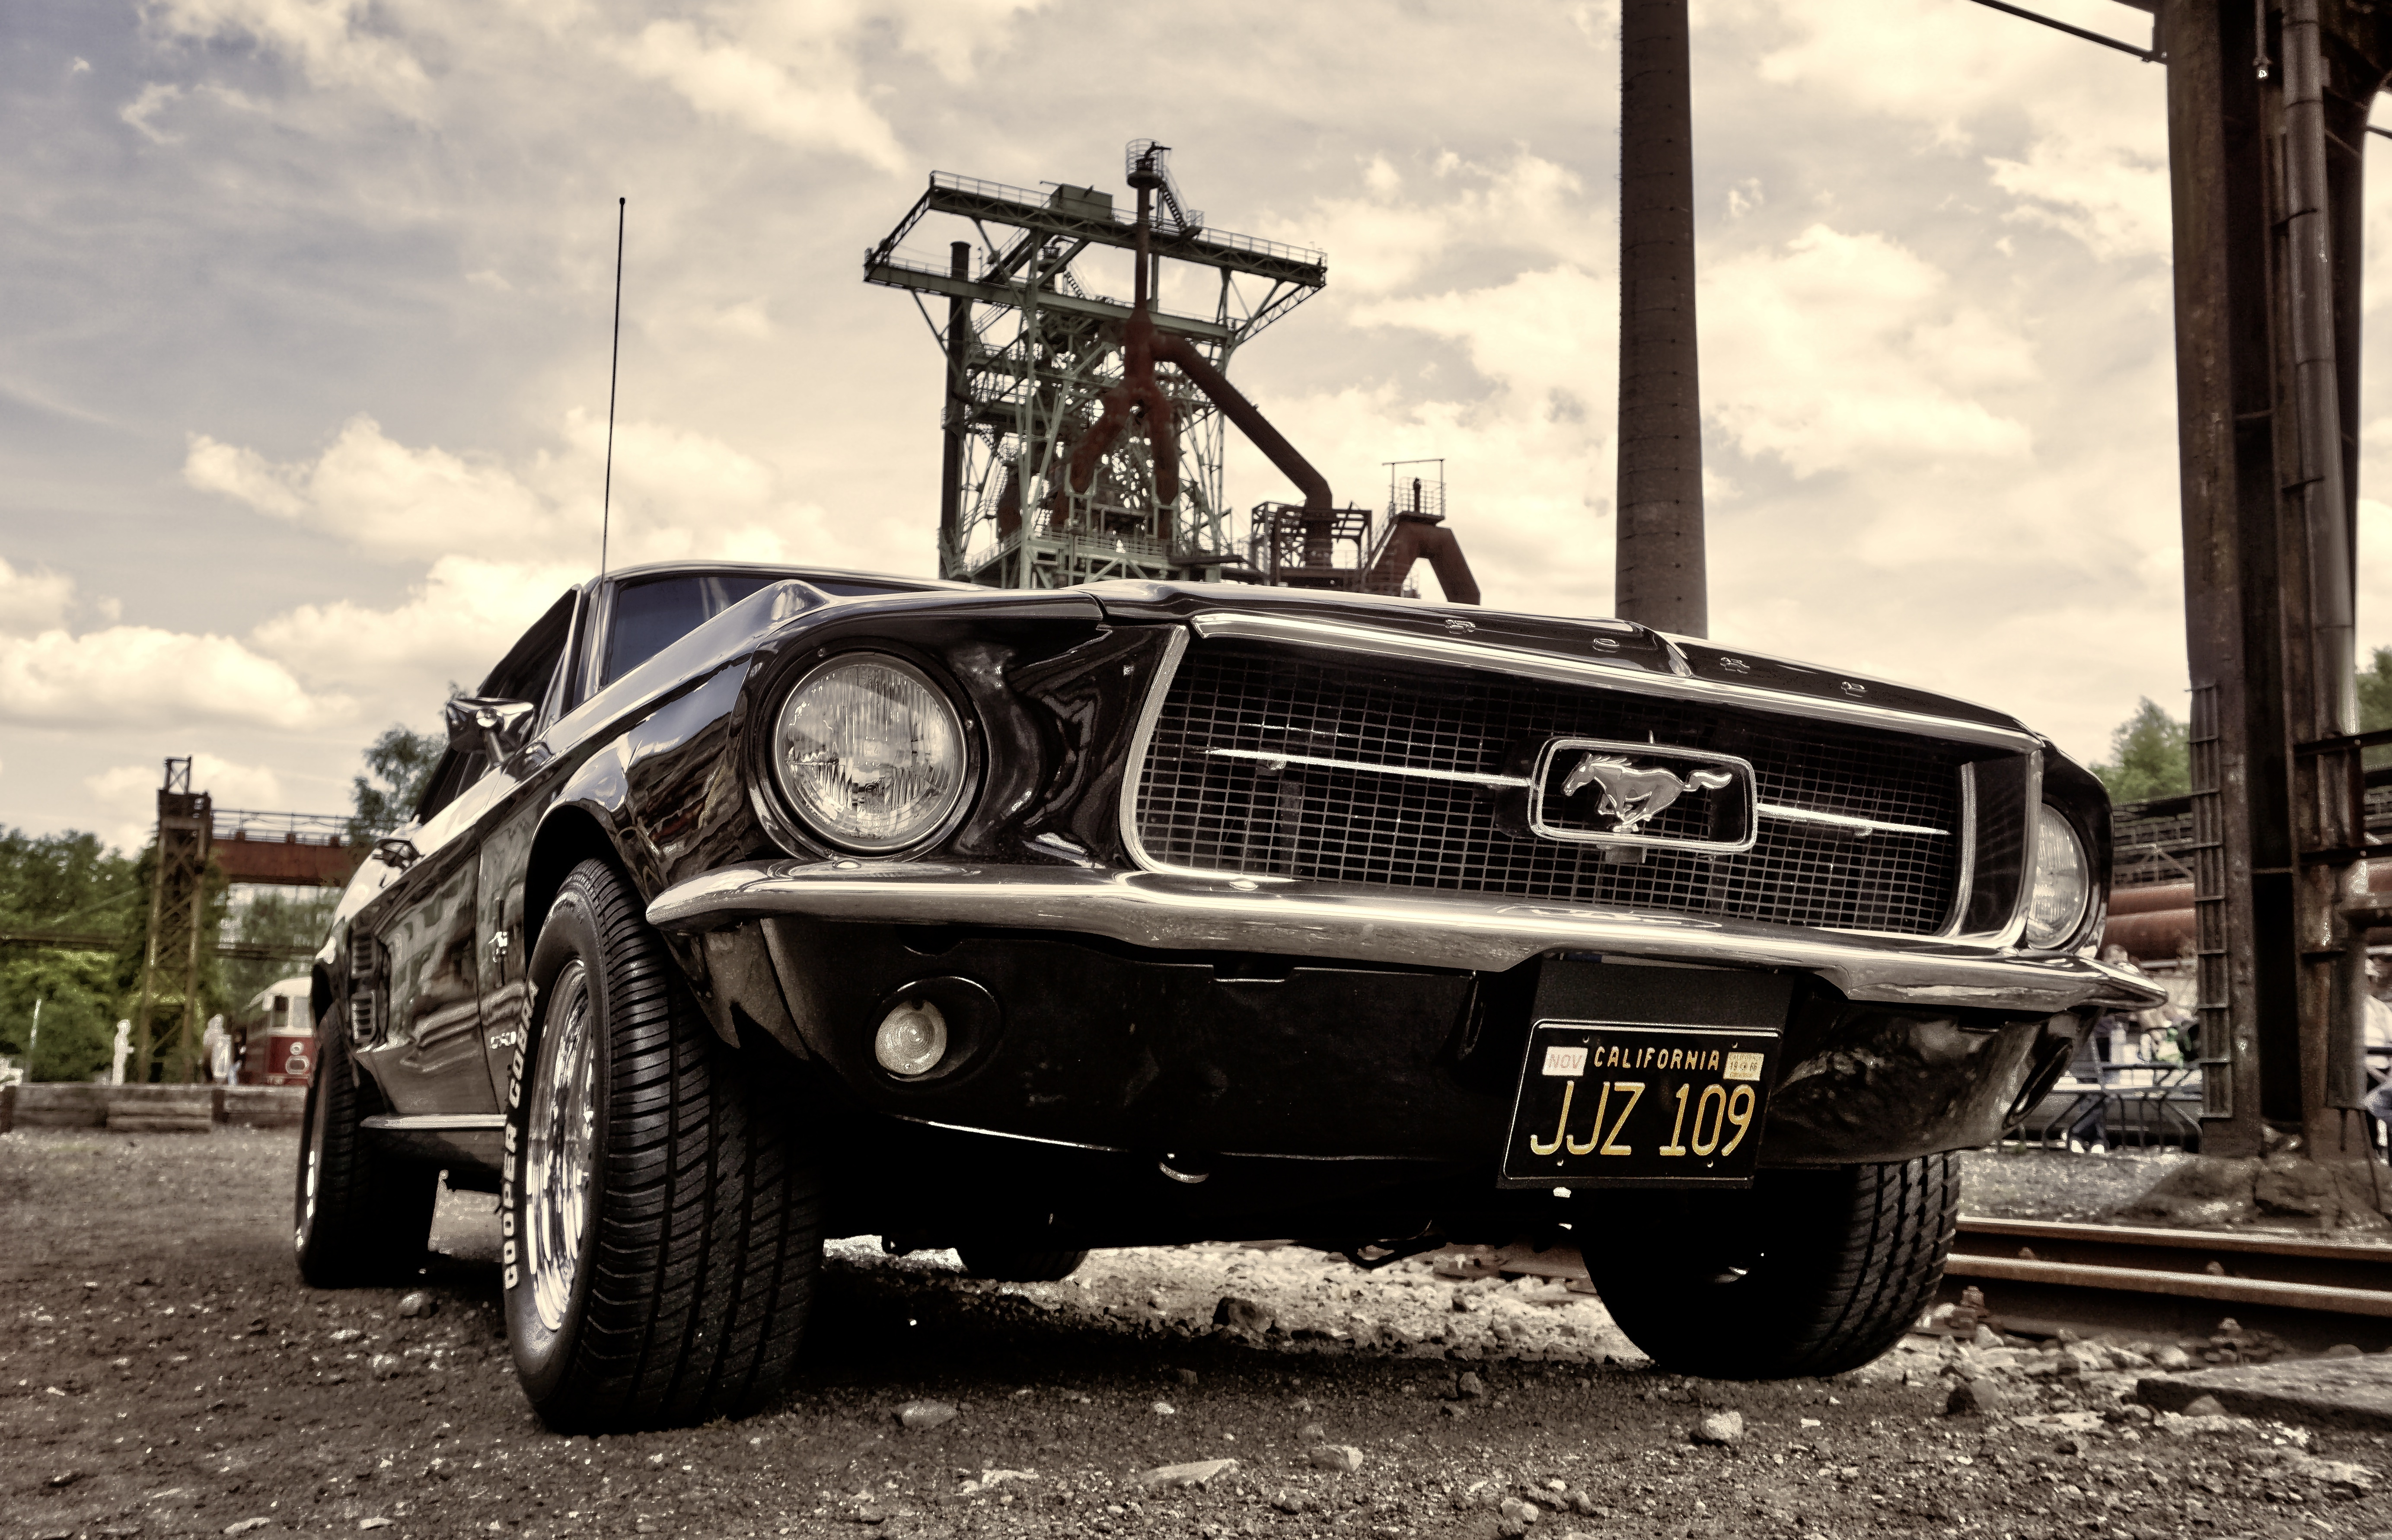 Ford Mustang 150x96 cm